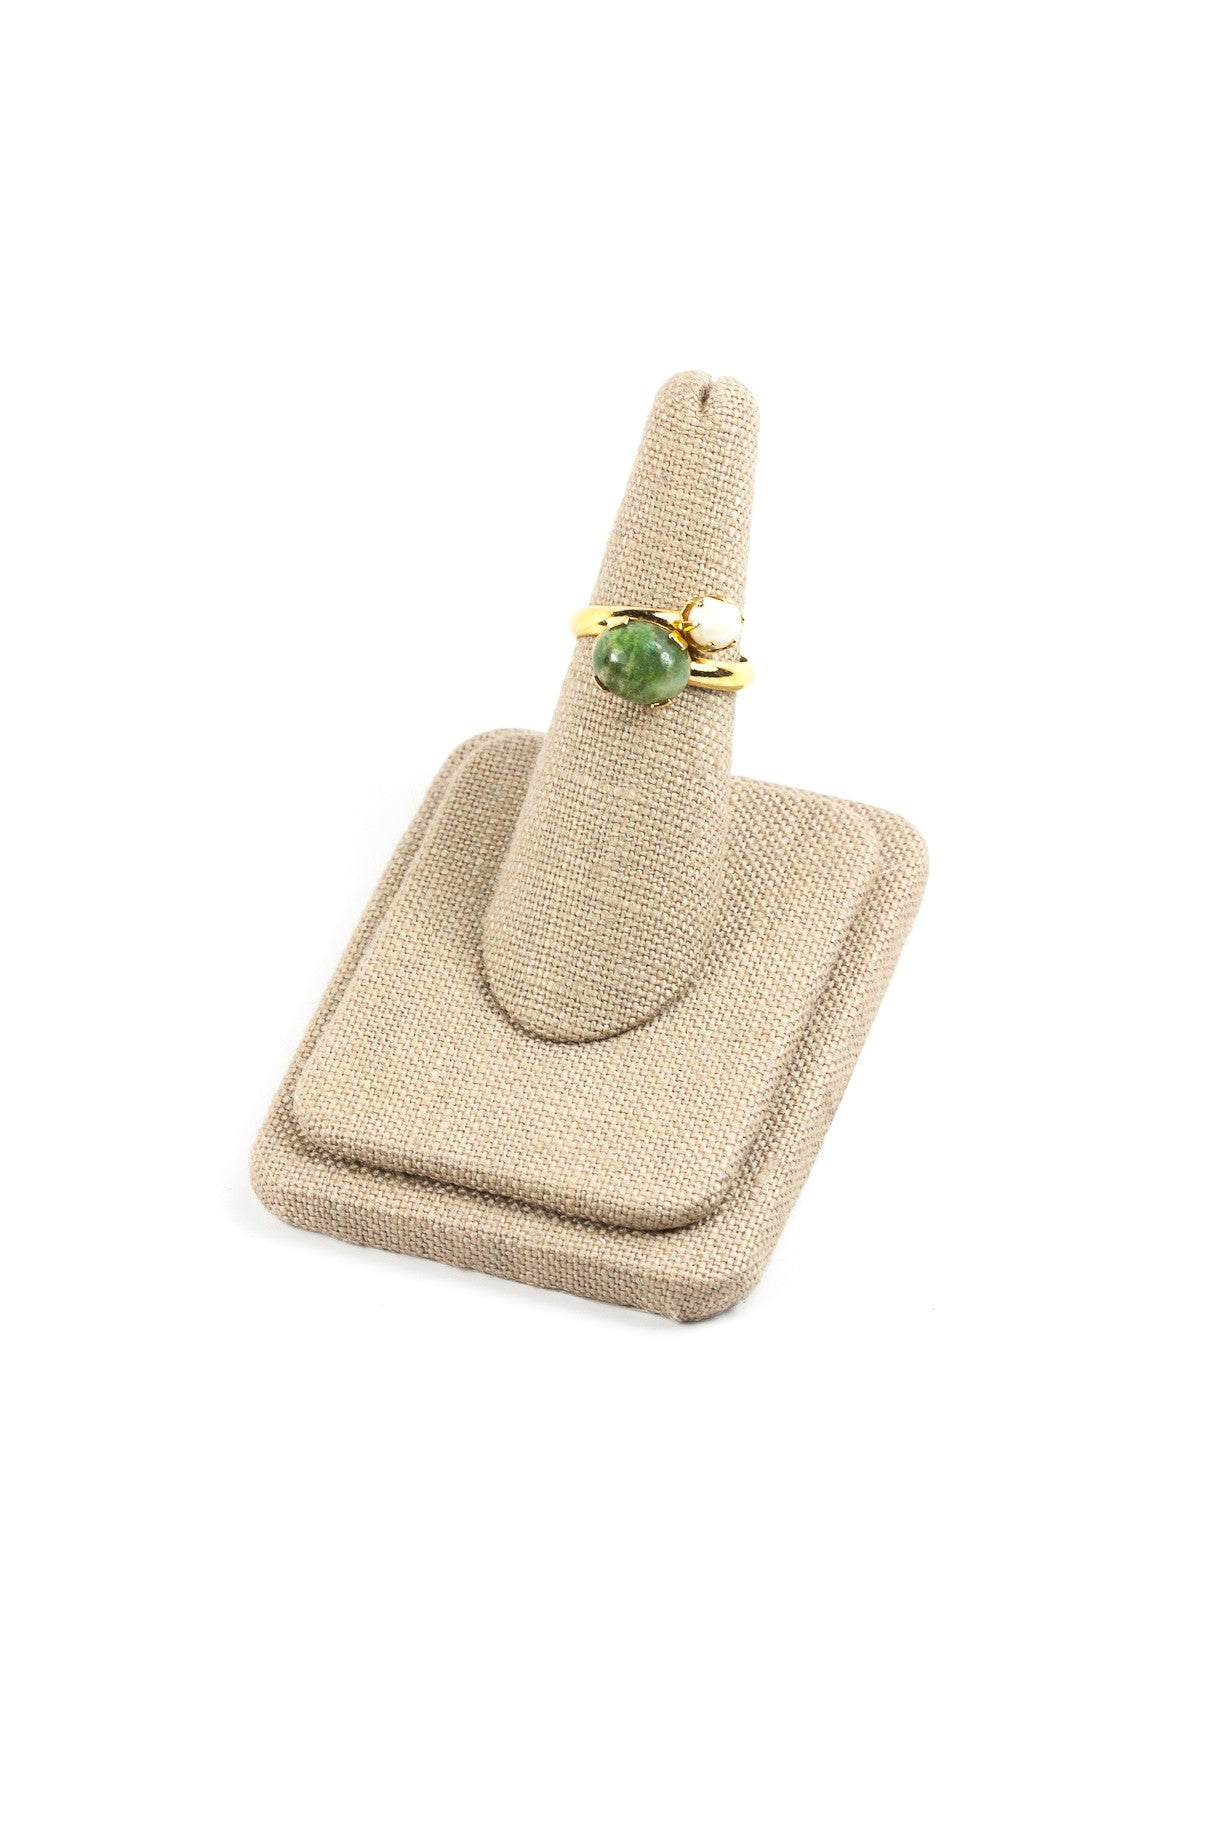 70's__Sarah Coventry__Twisted Jade Pearl Ring